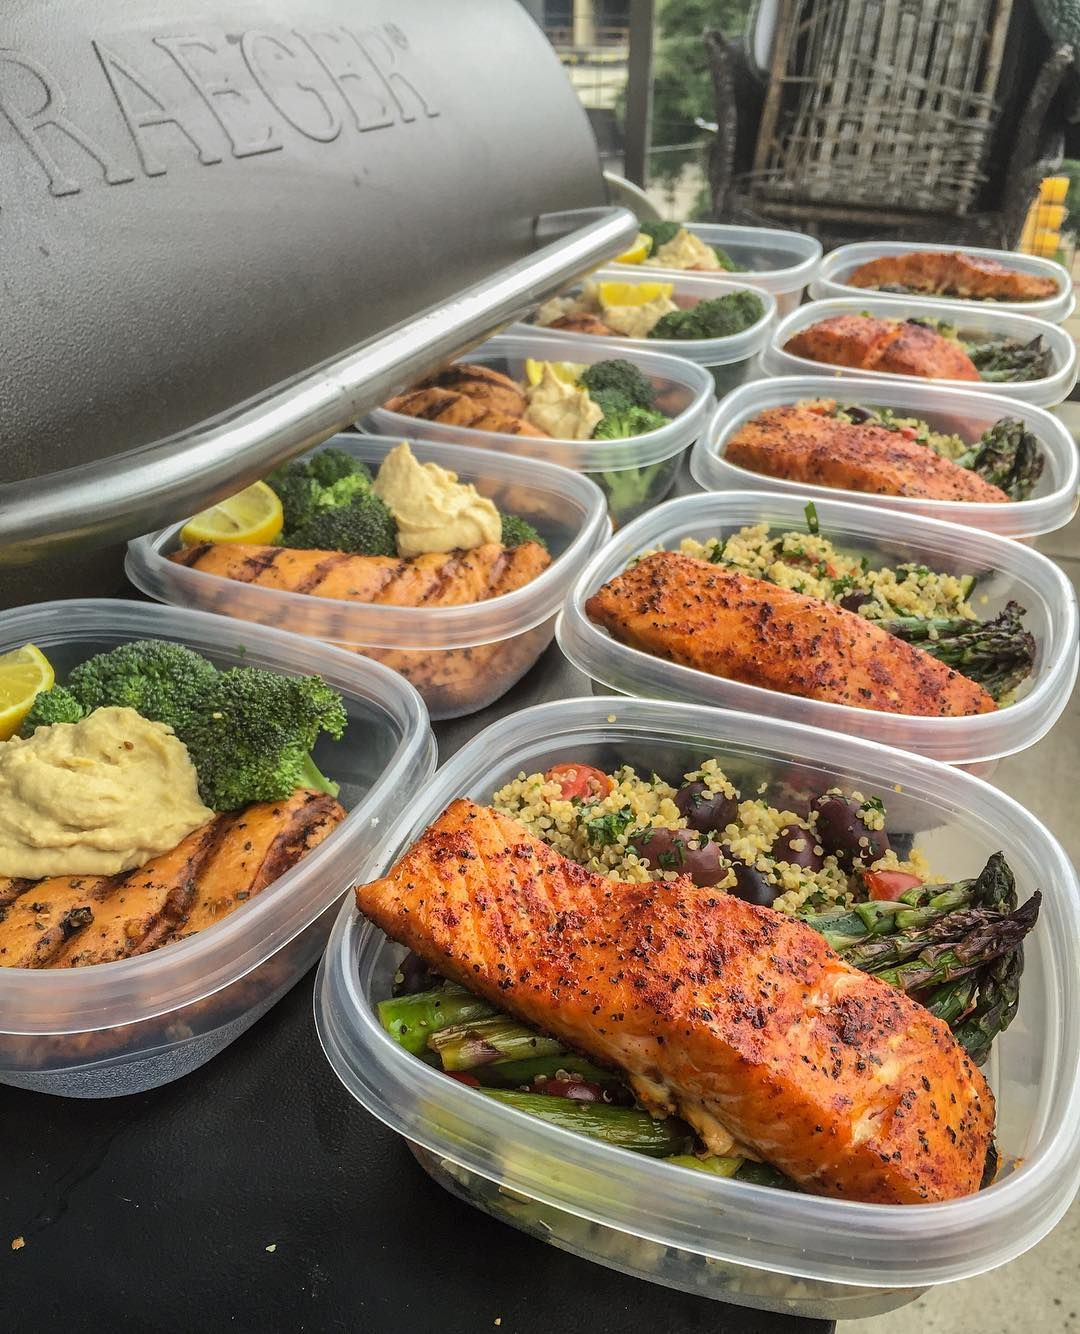 Food. Fitness. Faith. Texas. #FitMenCook, #FitWomenCook, #nocheatsneeded Built in the kitchen, Sculpted in the gym! fitmencook@gmail.com